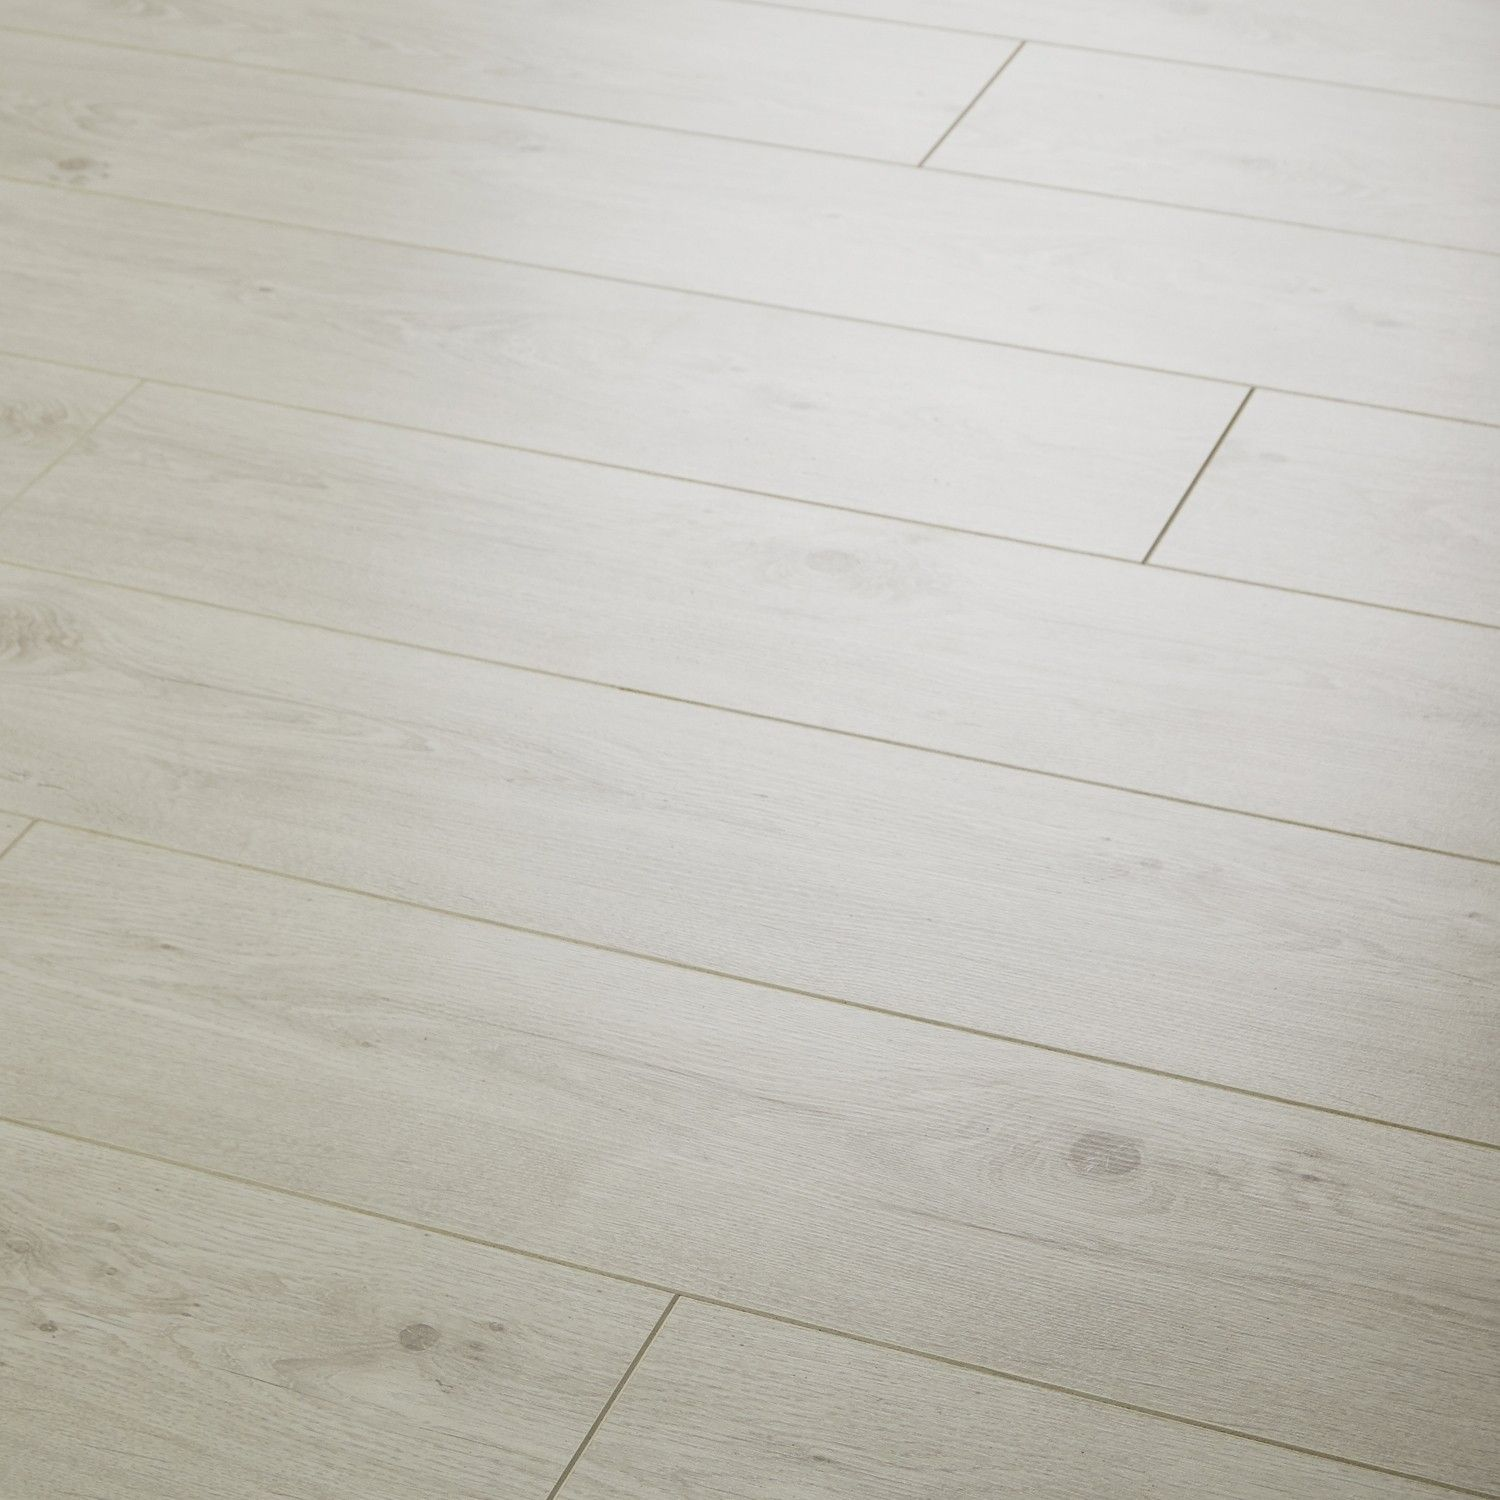 Vitality+Deluxe+White+Oiled+Oak+Laminate+Flooring - Arlington White Oak Effect Laminate - Laminate Flooring Flooring